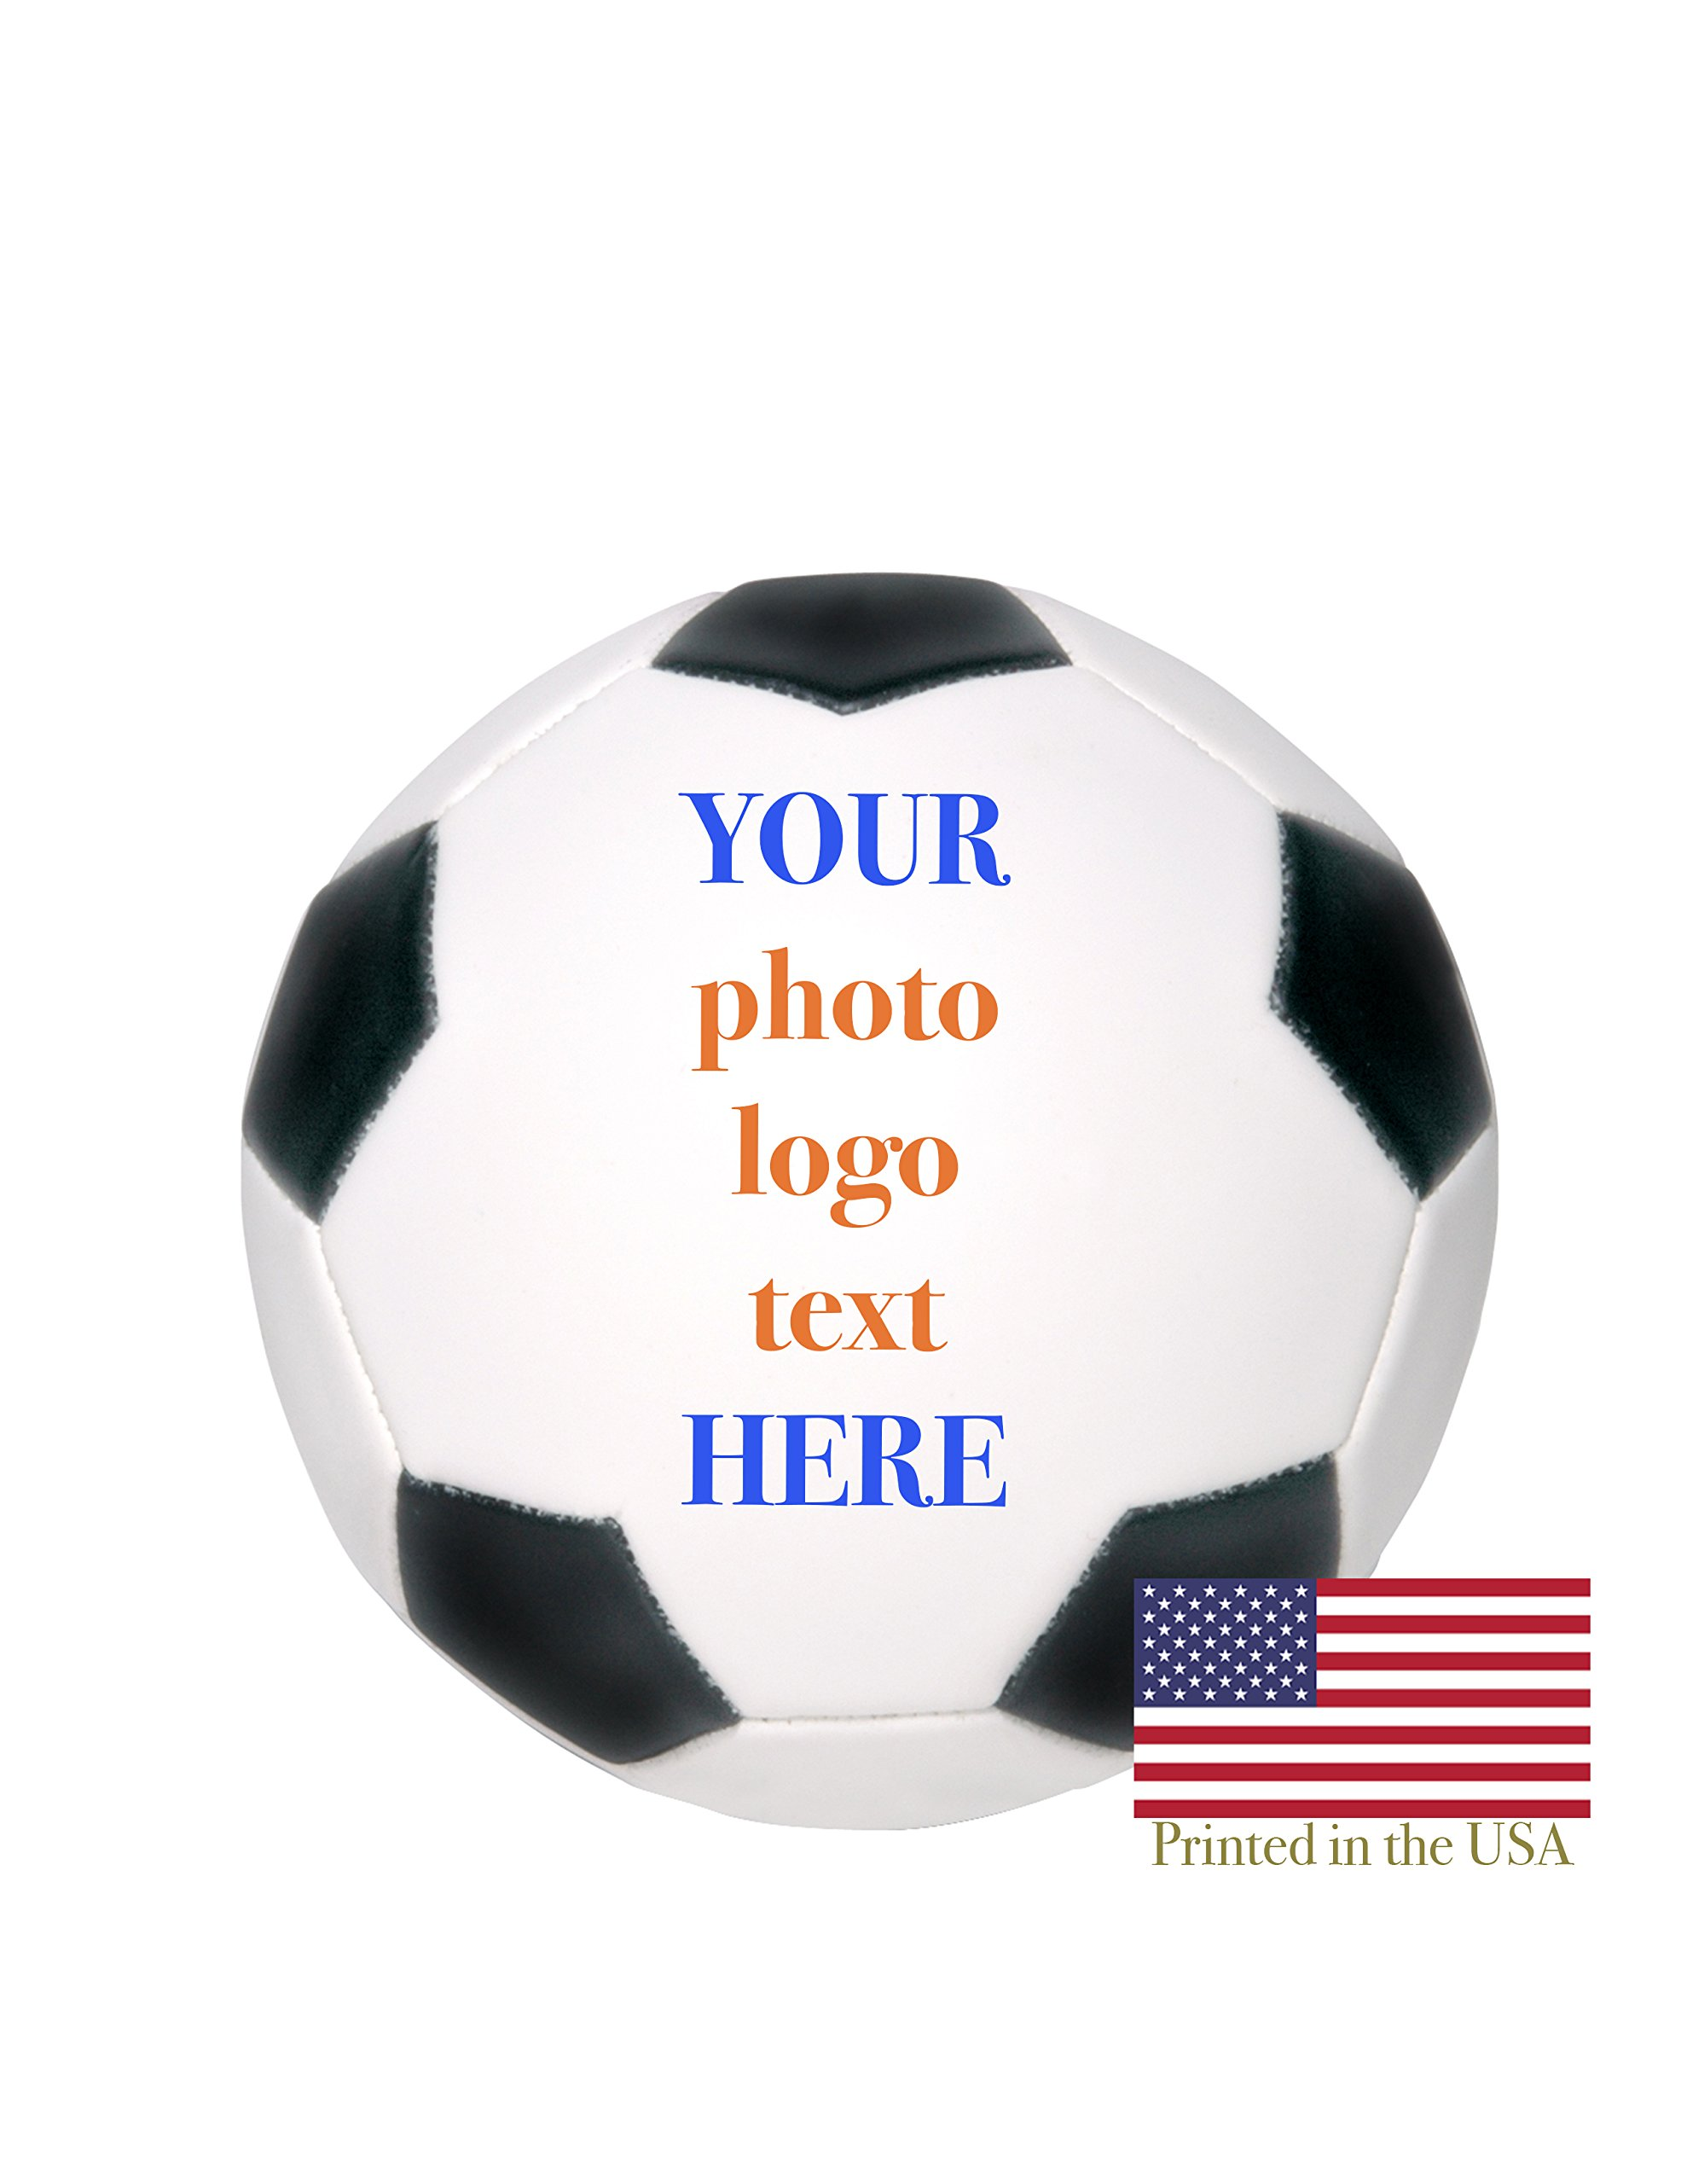 Custom Personalized Mini Soccer Ball 6 Inch Soccer Ball Ships Next Day, High Resolution Photos, Logos & Text on Soccer Balls Trophies, Personalized Gifts